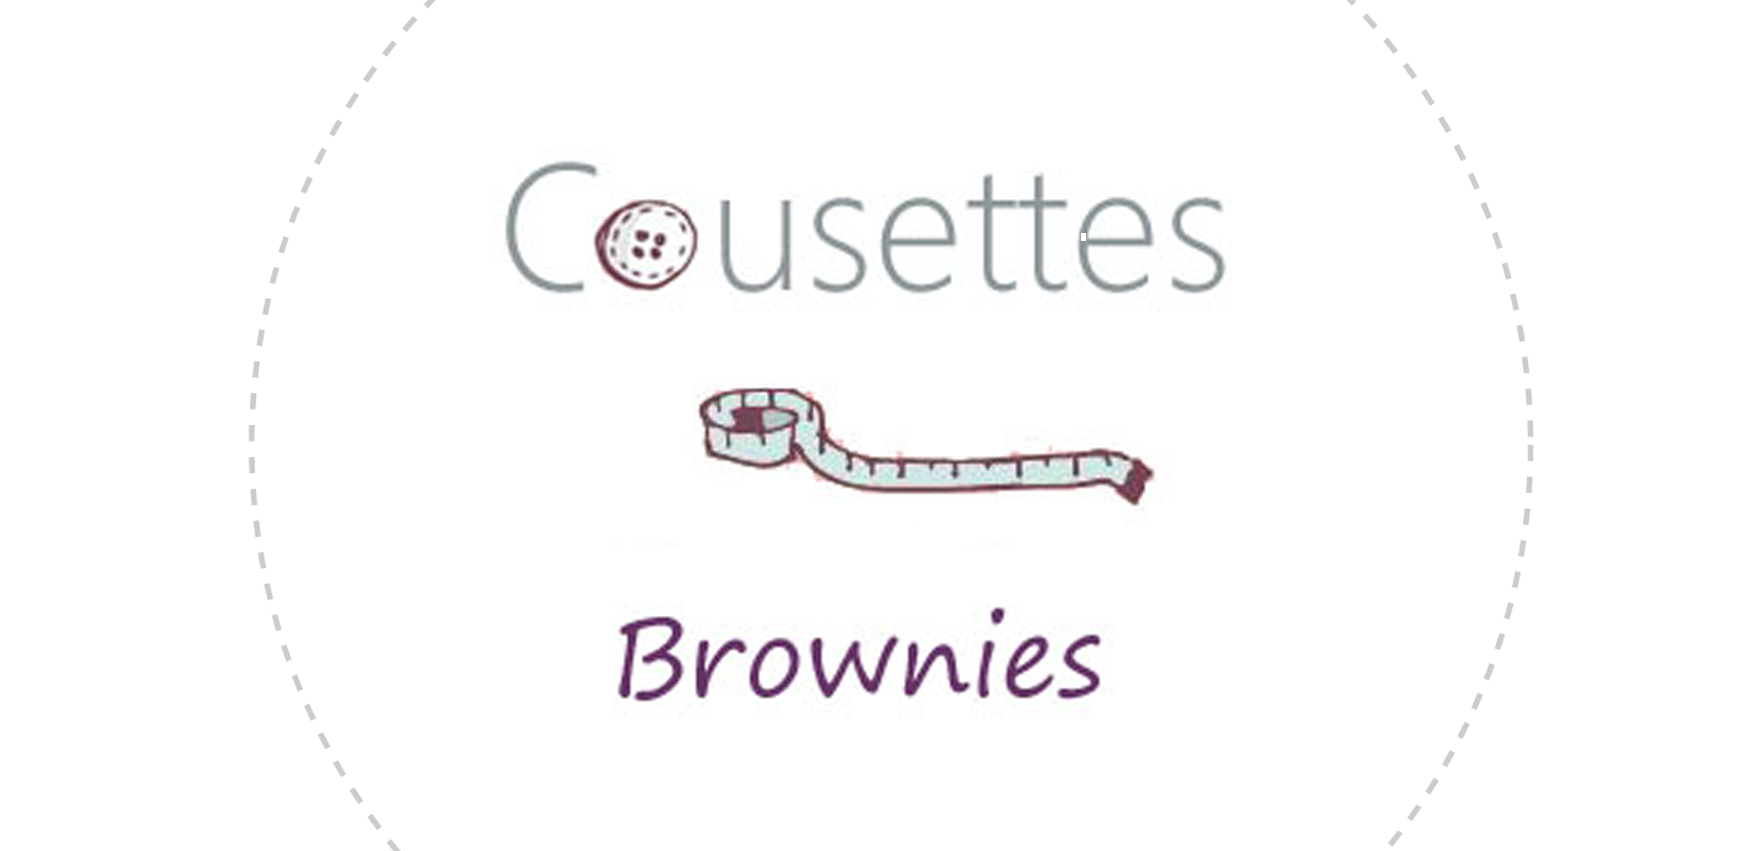 Cousettes & Brownies